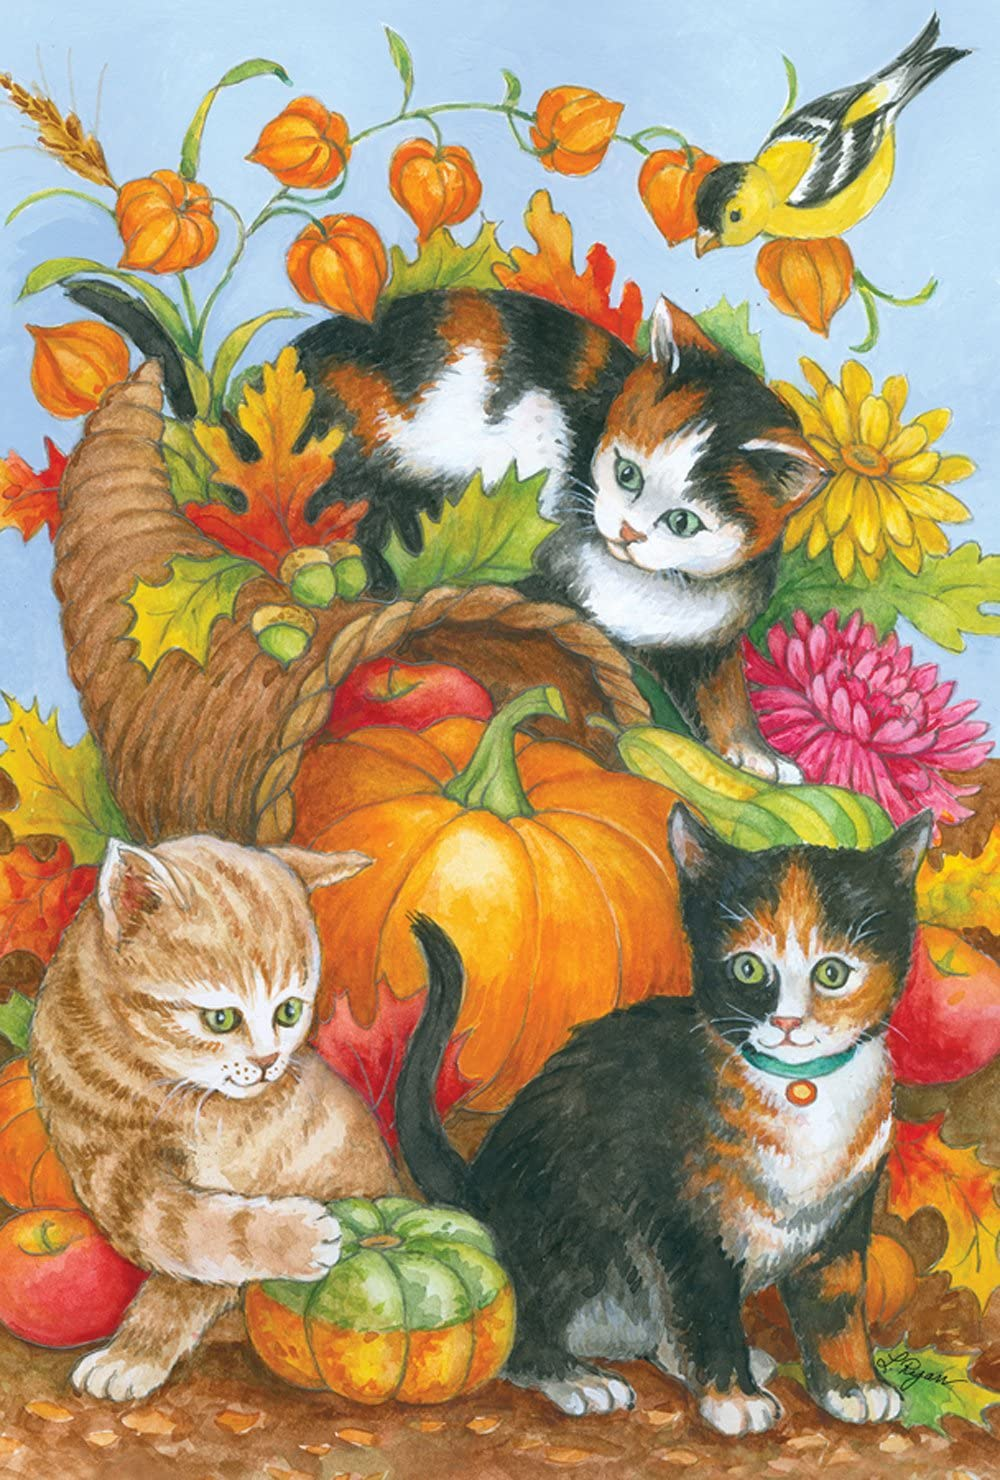 Toland Home Garden Kitten Cornucopia 28 x 40 Decorative Fall Kitty Cat Pumpkin House Flag